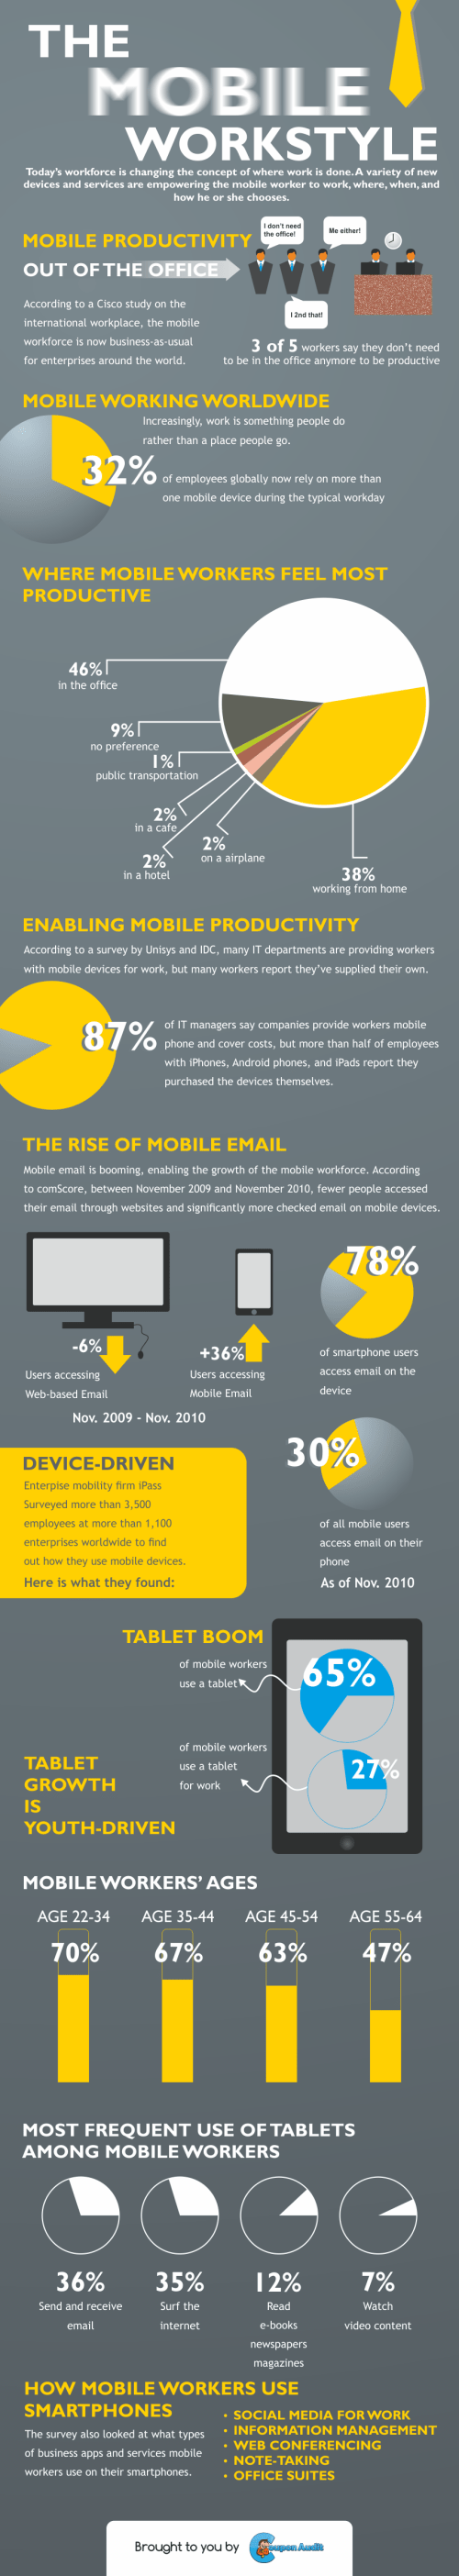 the-mobile-workstyle-infographic_5131cad77f7da